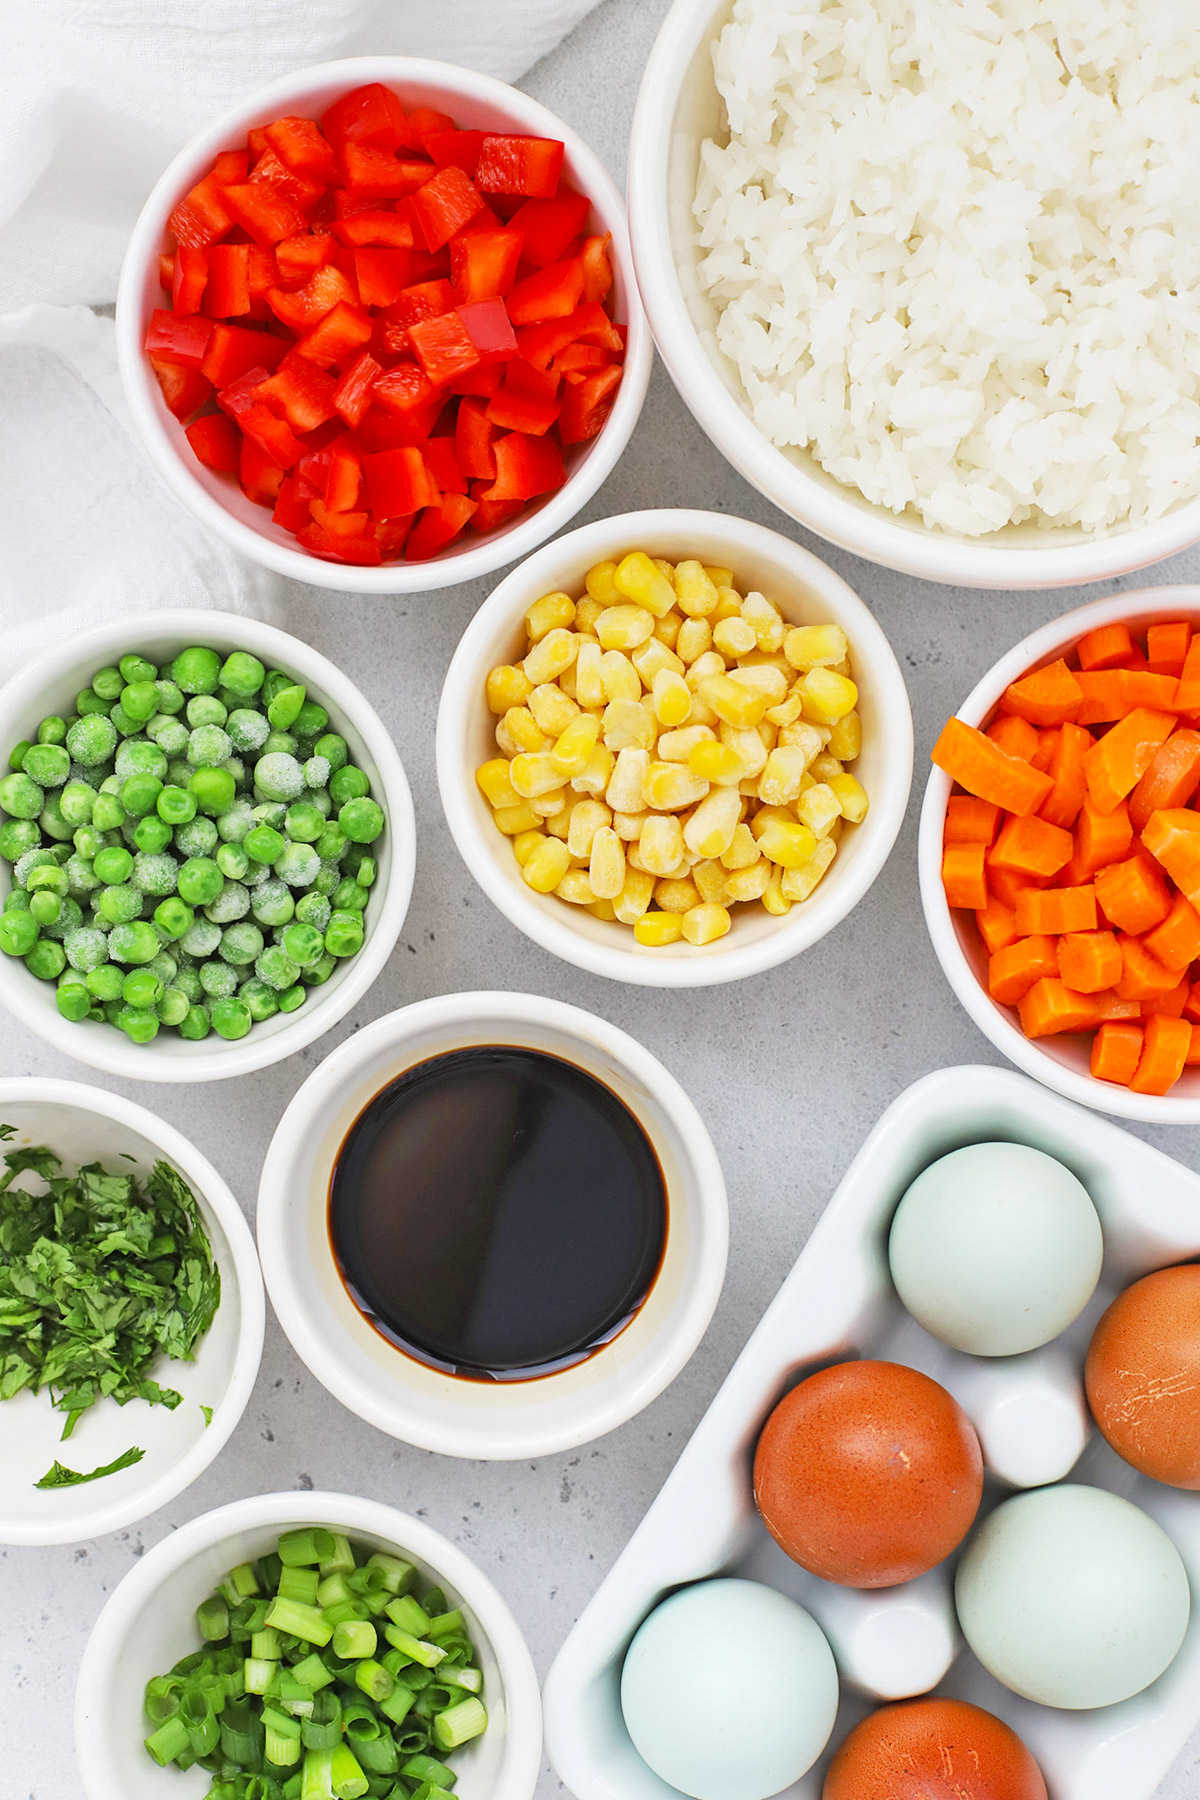 Overhead view of ingredients for healthy vegetarian fried rice in bowls--tamari, colorful veggies, rice, and farm fresh eggs.